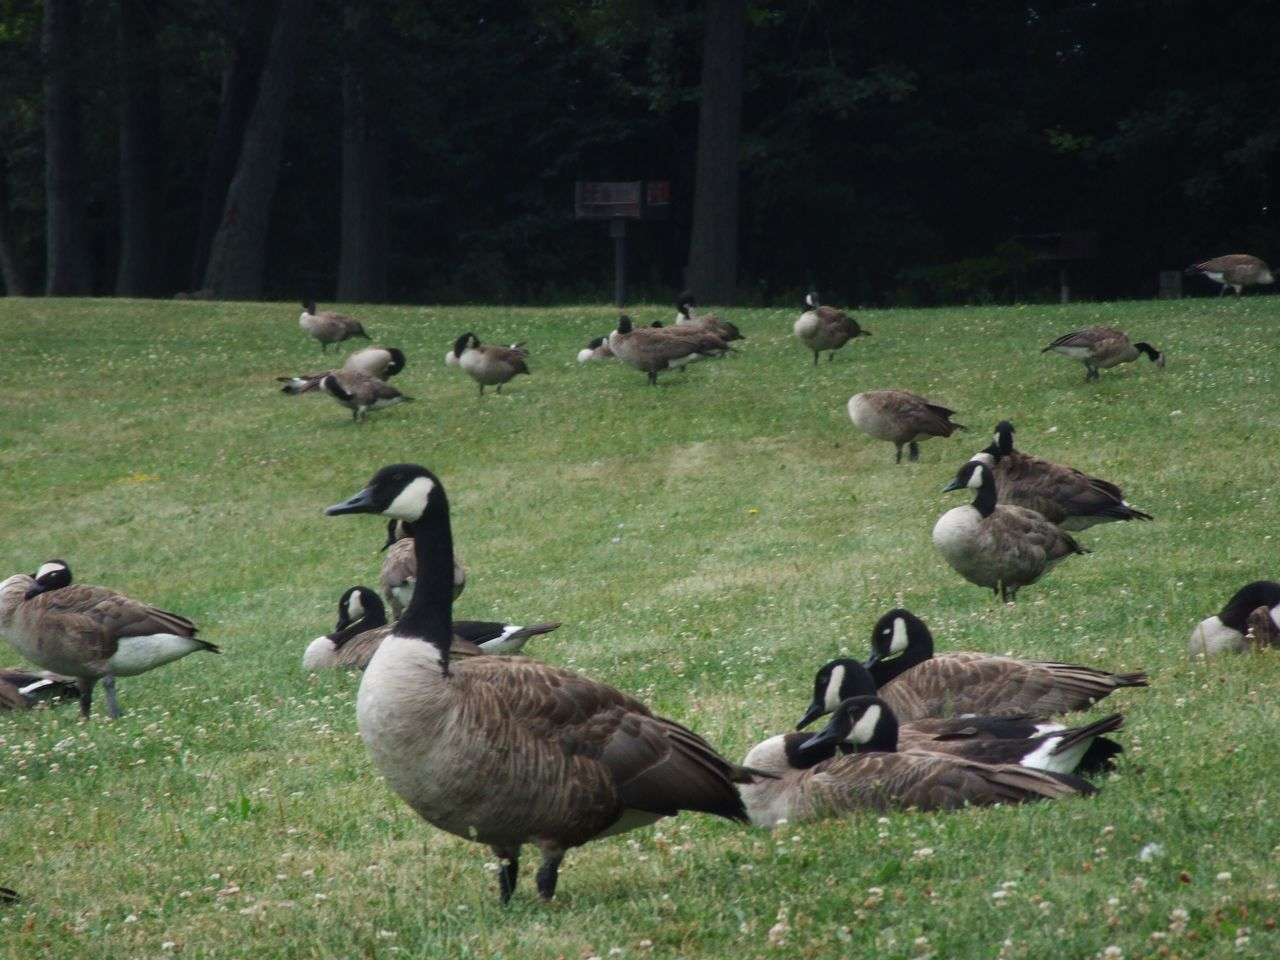 animal themes, animals in the wild, bird, grass, field, large group of animals, outdoors, nature, day, animal wildlife, goose, geese, tree, no people, togetherness